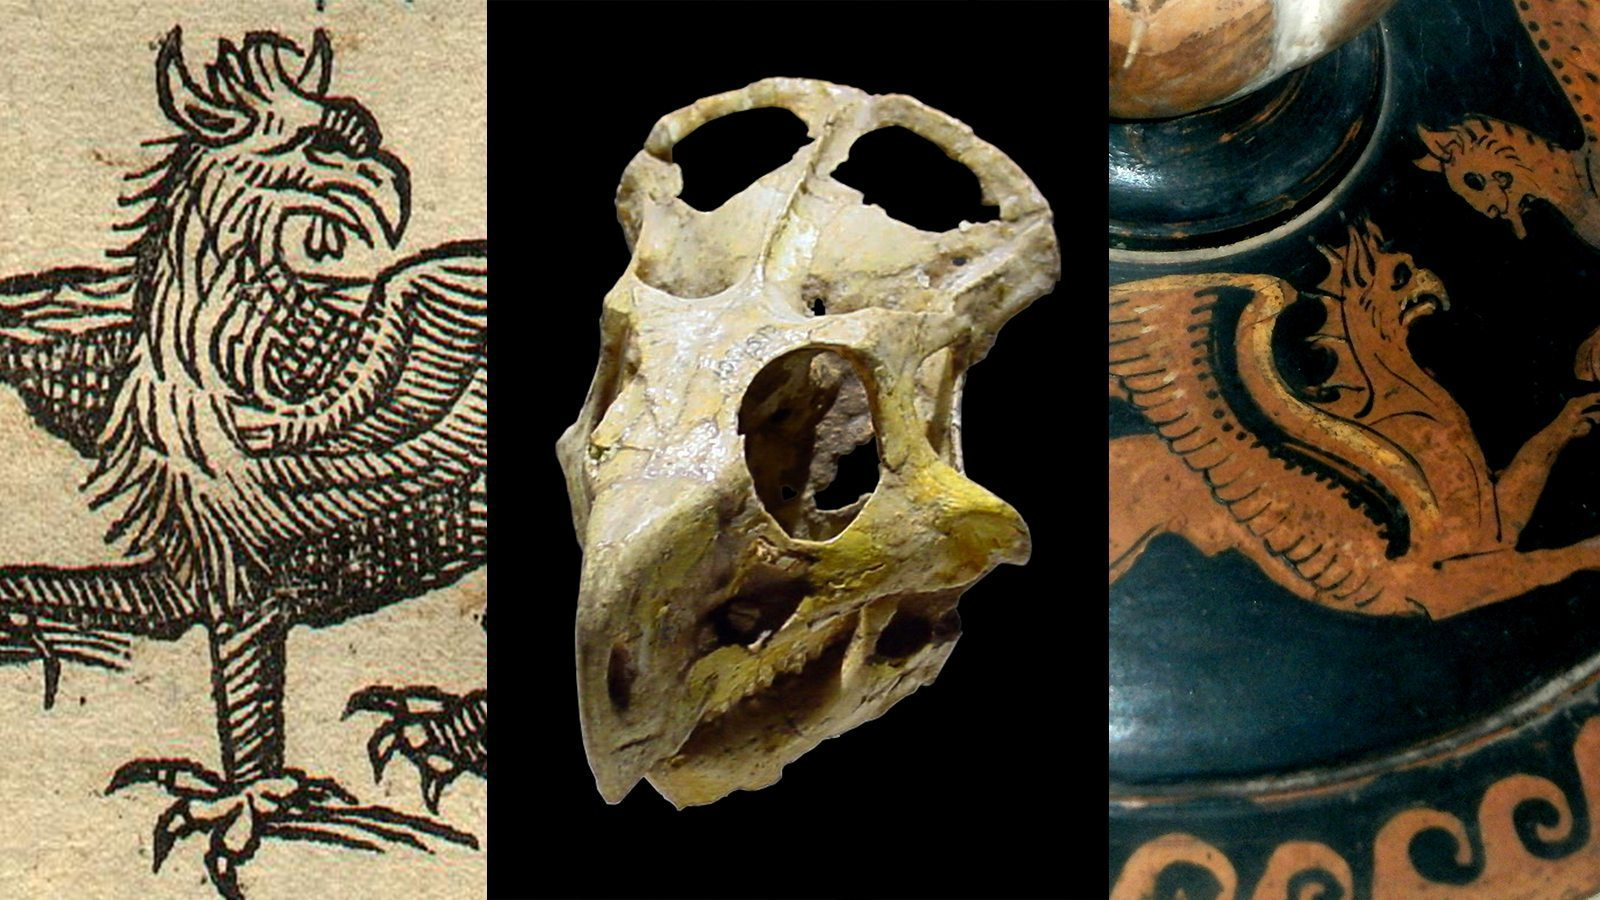 Image: Medieval Image of a Griffin, Protoceratops Skull, and ancient Greek Pottery of a Griffin